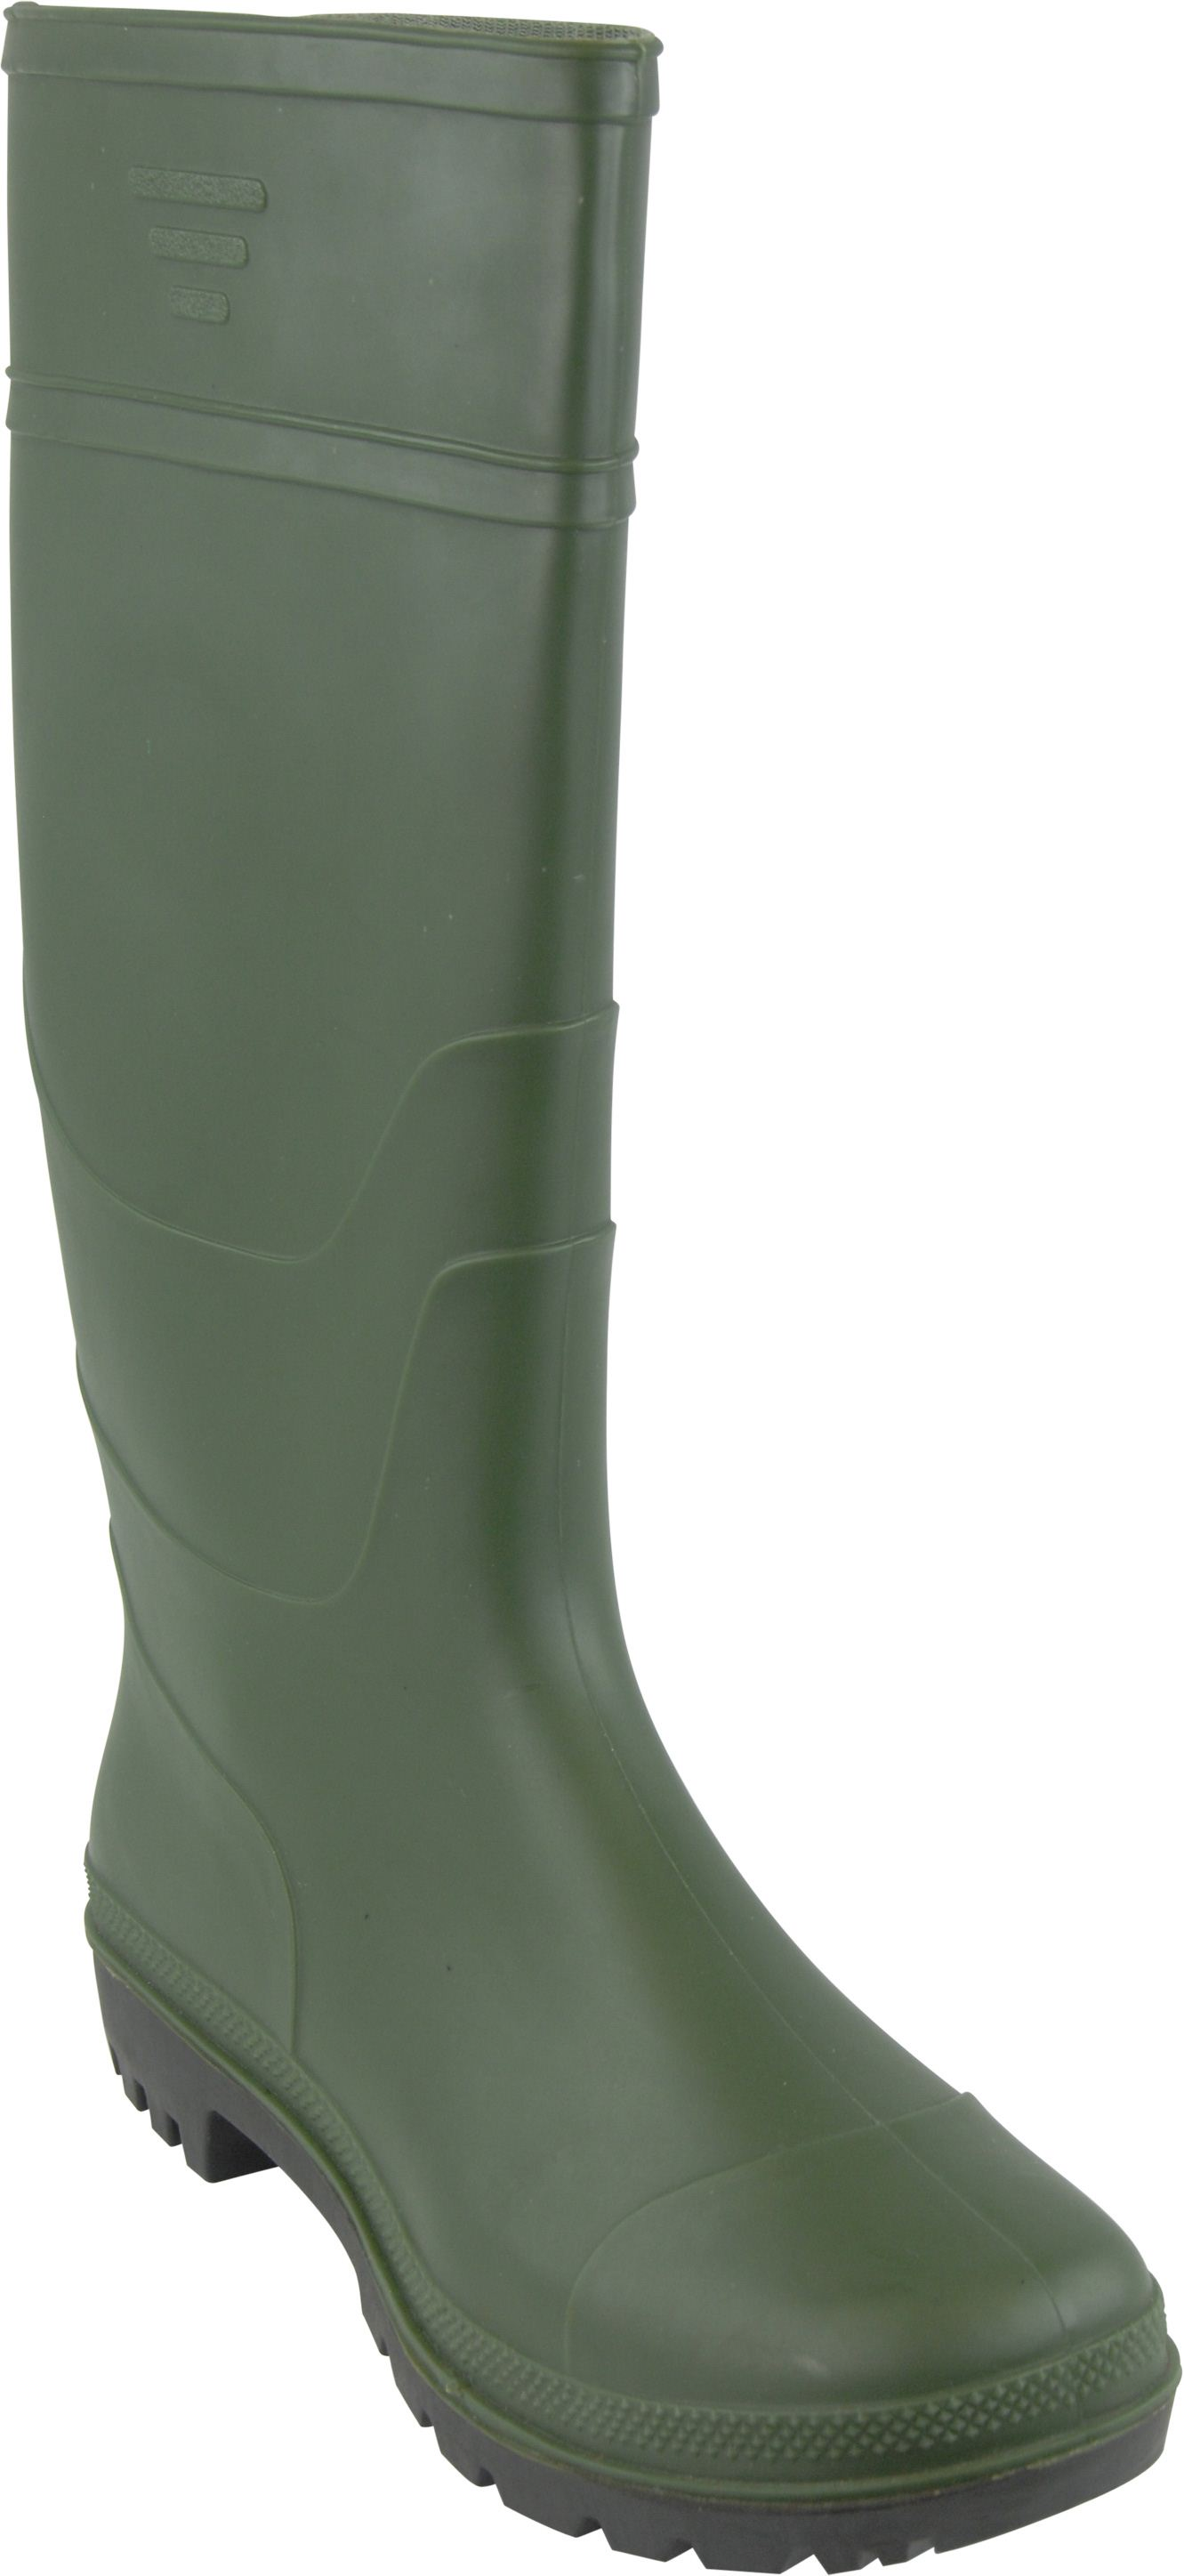 Highlander Repton Wellington Boots